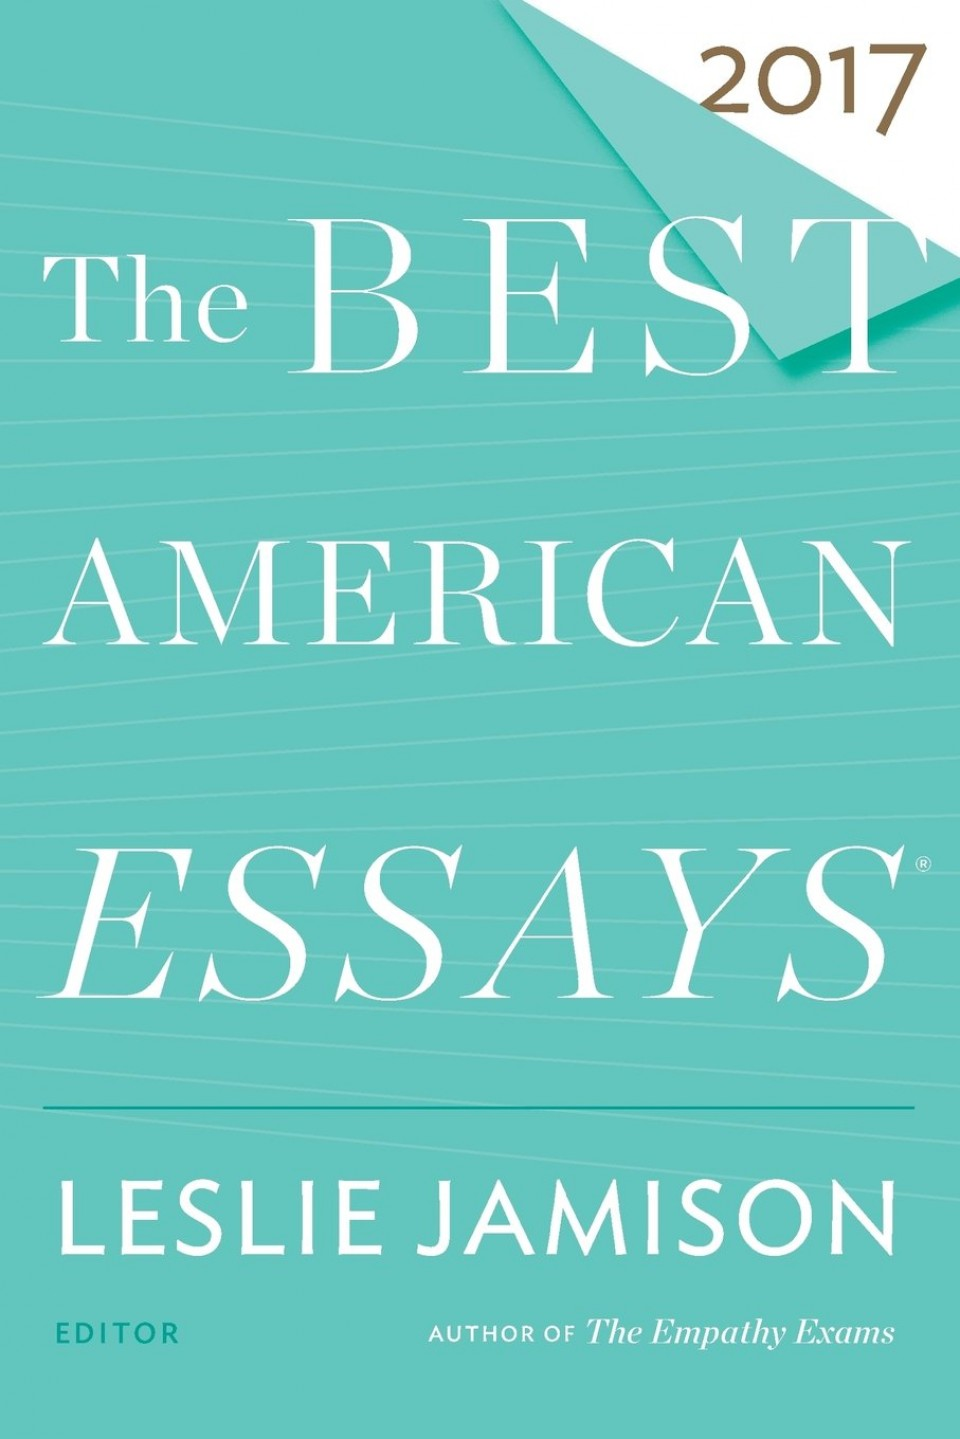 002 Essay Example 61tzl Nruvl The Best American Essays Phenomenal 2016 Pdf Download Audiobook Sparknotes 960